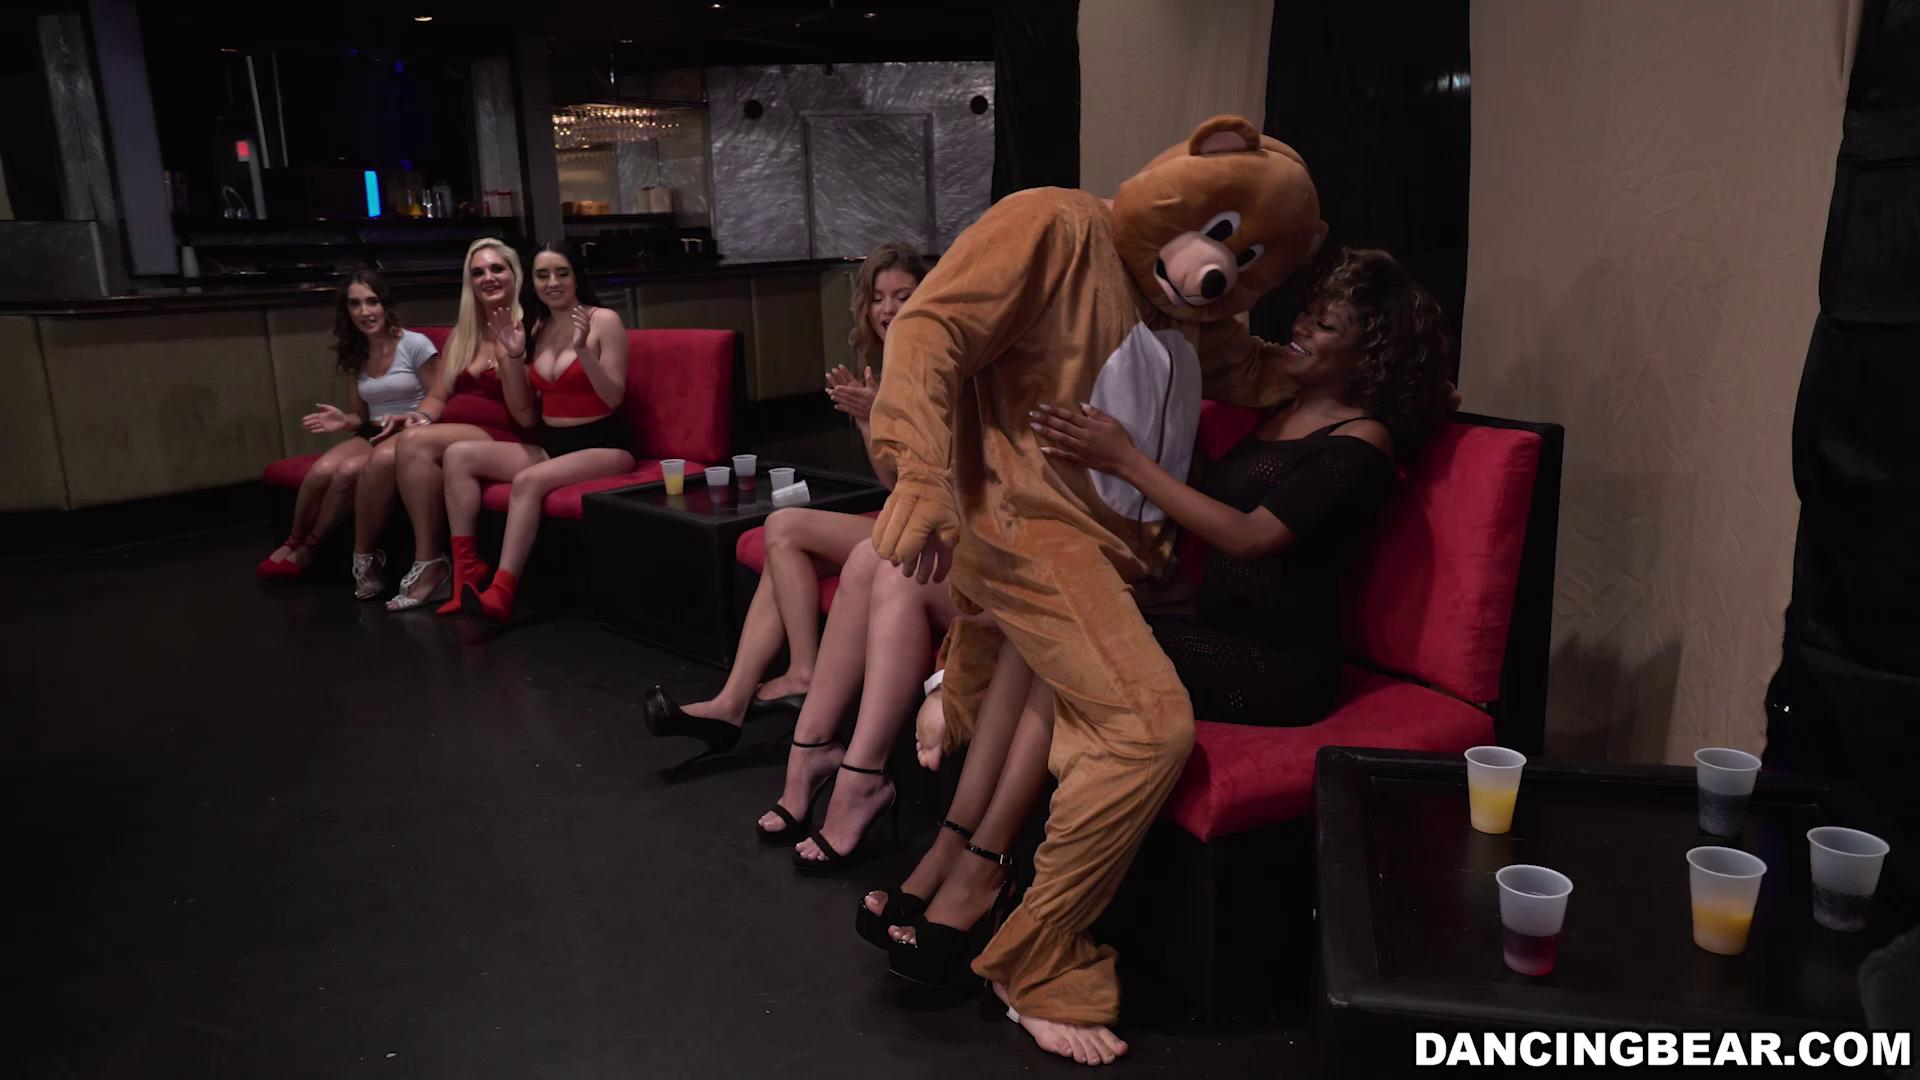 DancingBear – Shy Girls Turn Into Horny Beasts